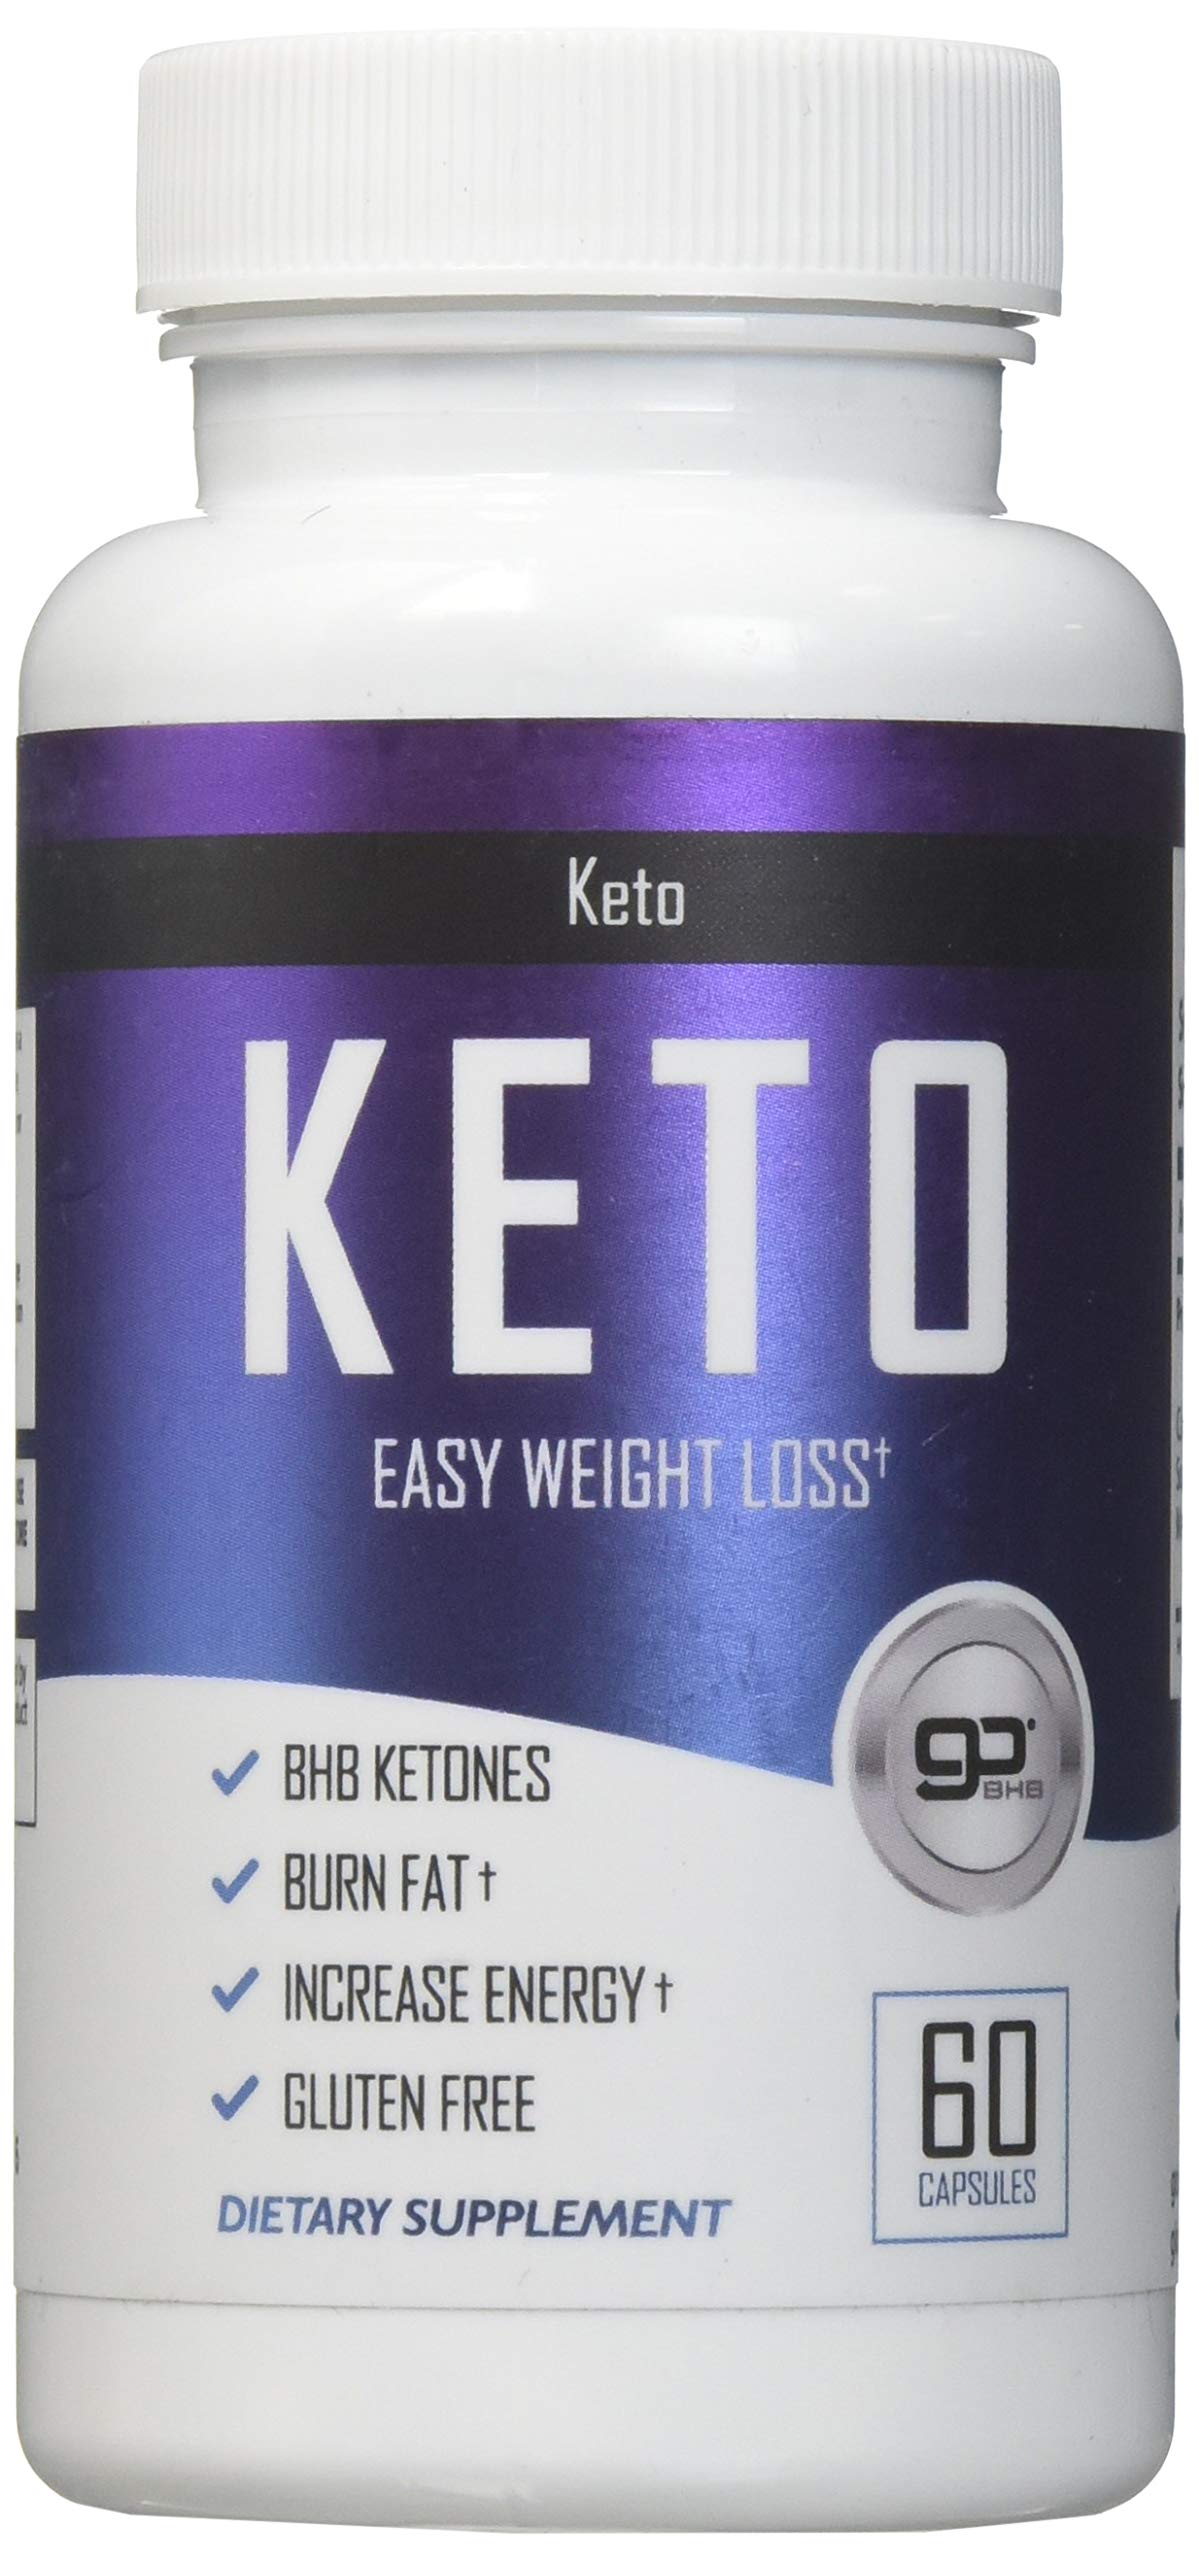 Keto Pills - Weight Loss Supplement - Best Keto Diet Pills - Burns Fat Fast by Scottsdale's Vitamins